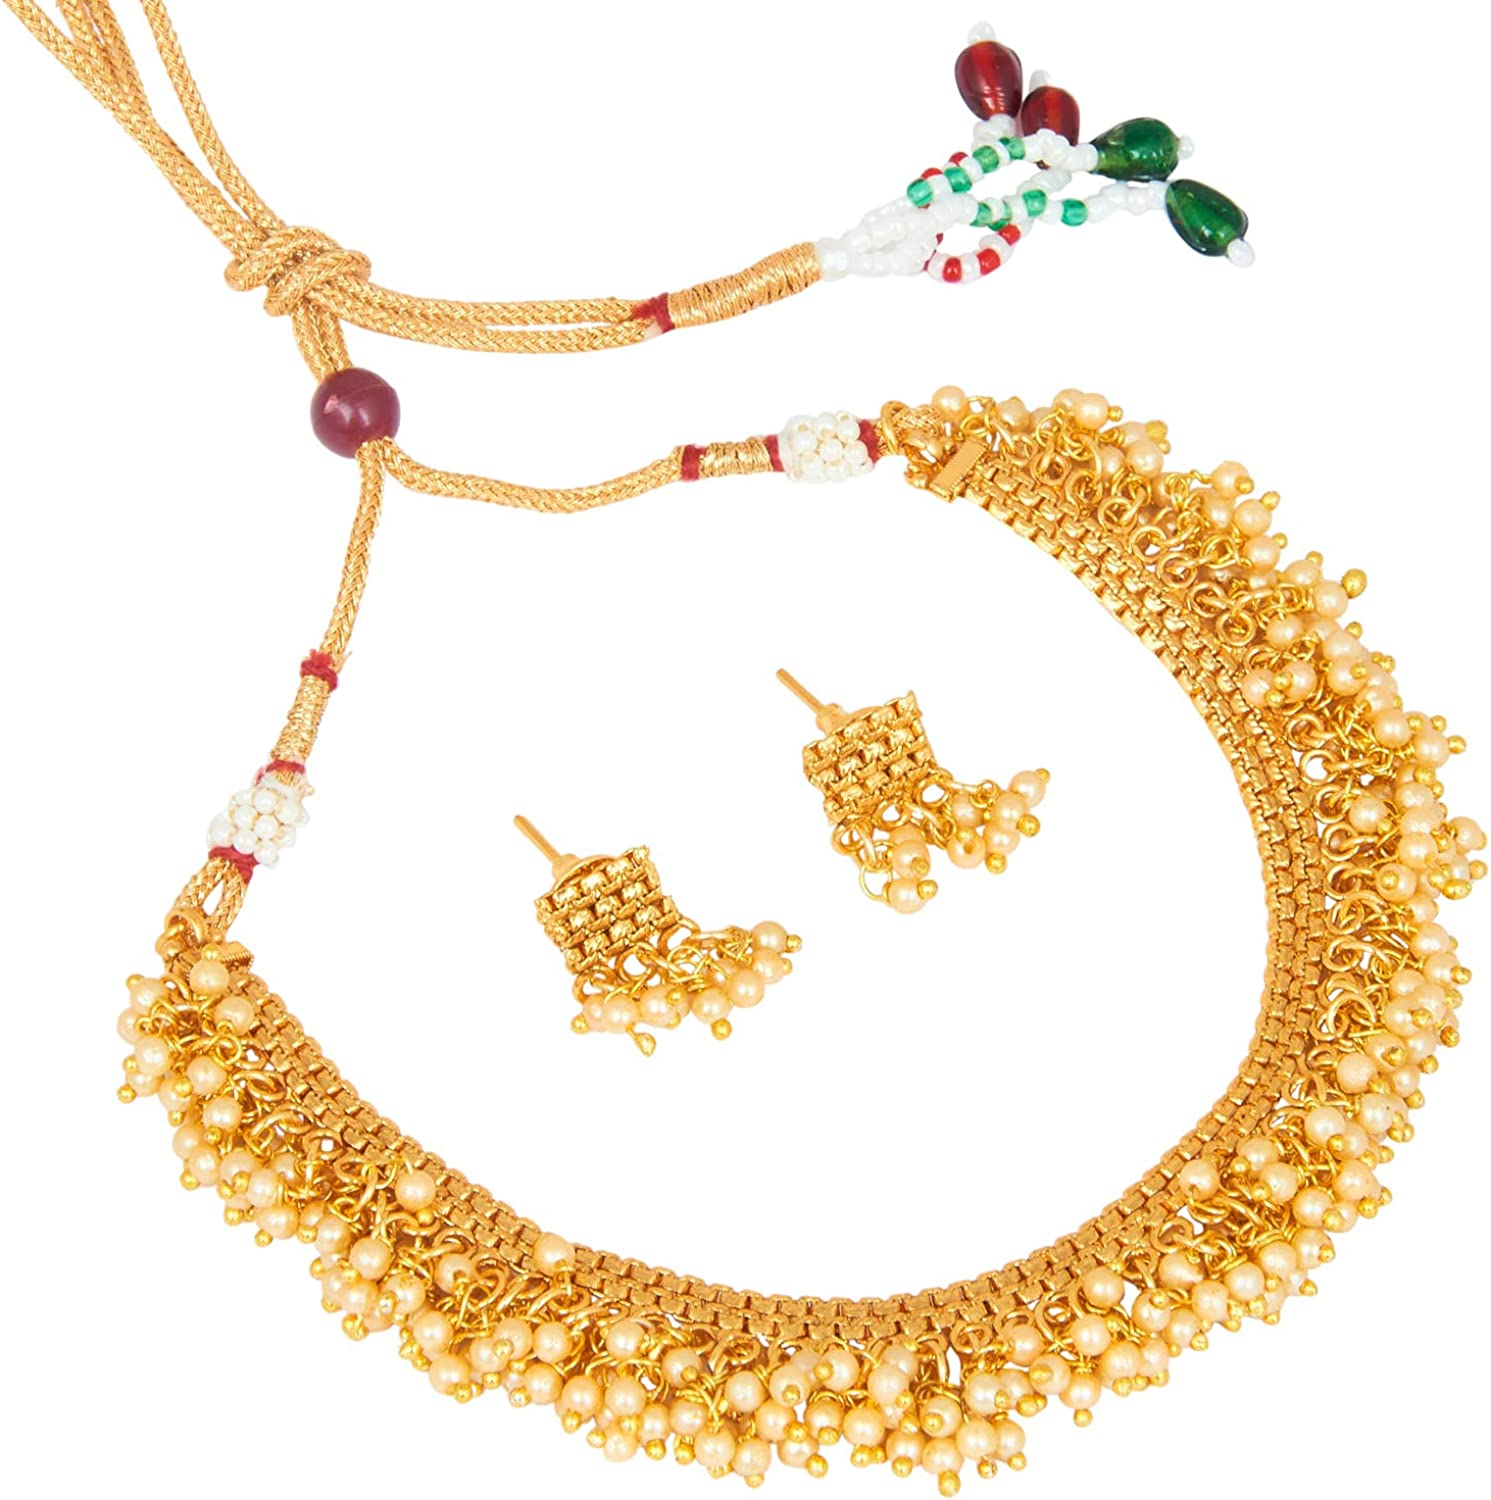 Bodha Traditional Indian Temple Gold Jewelry Necklace Set 22K with Earrings for Women & Girls (SJ_2683)